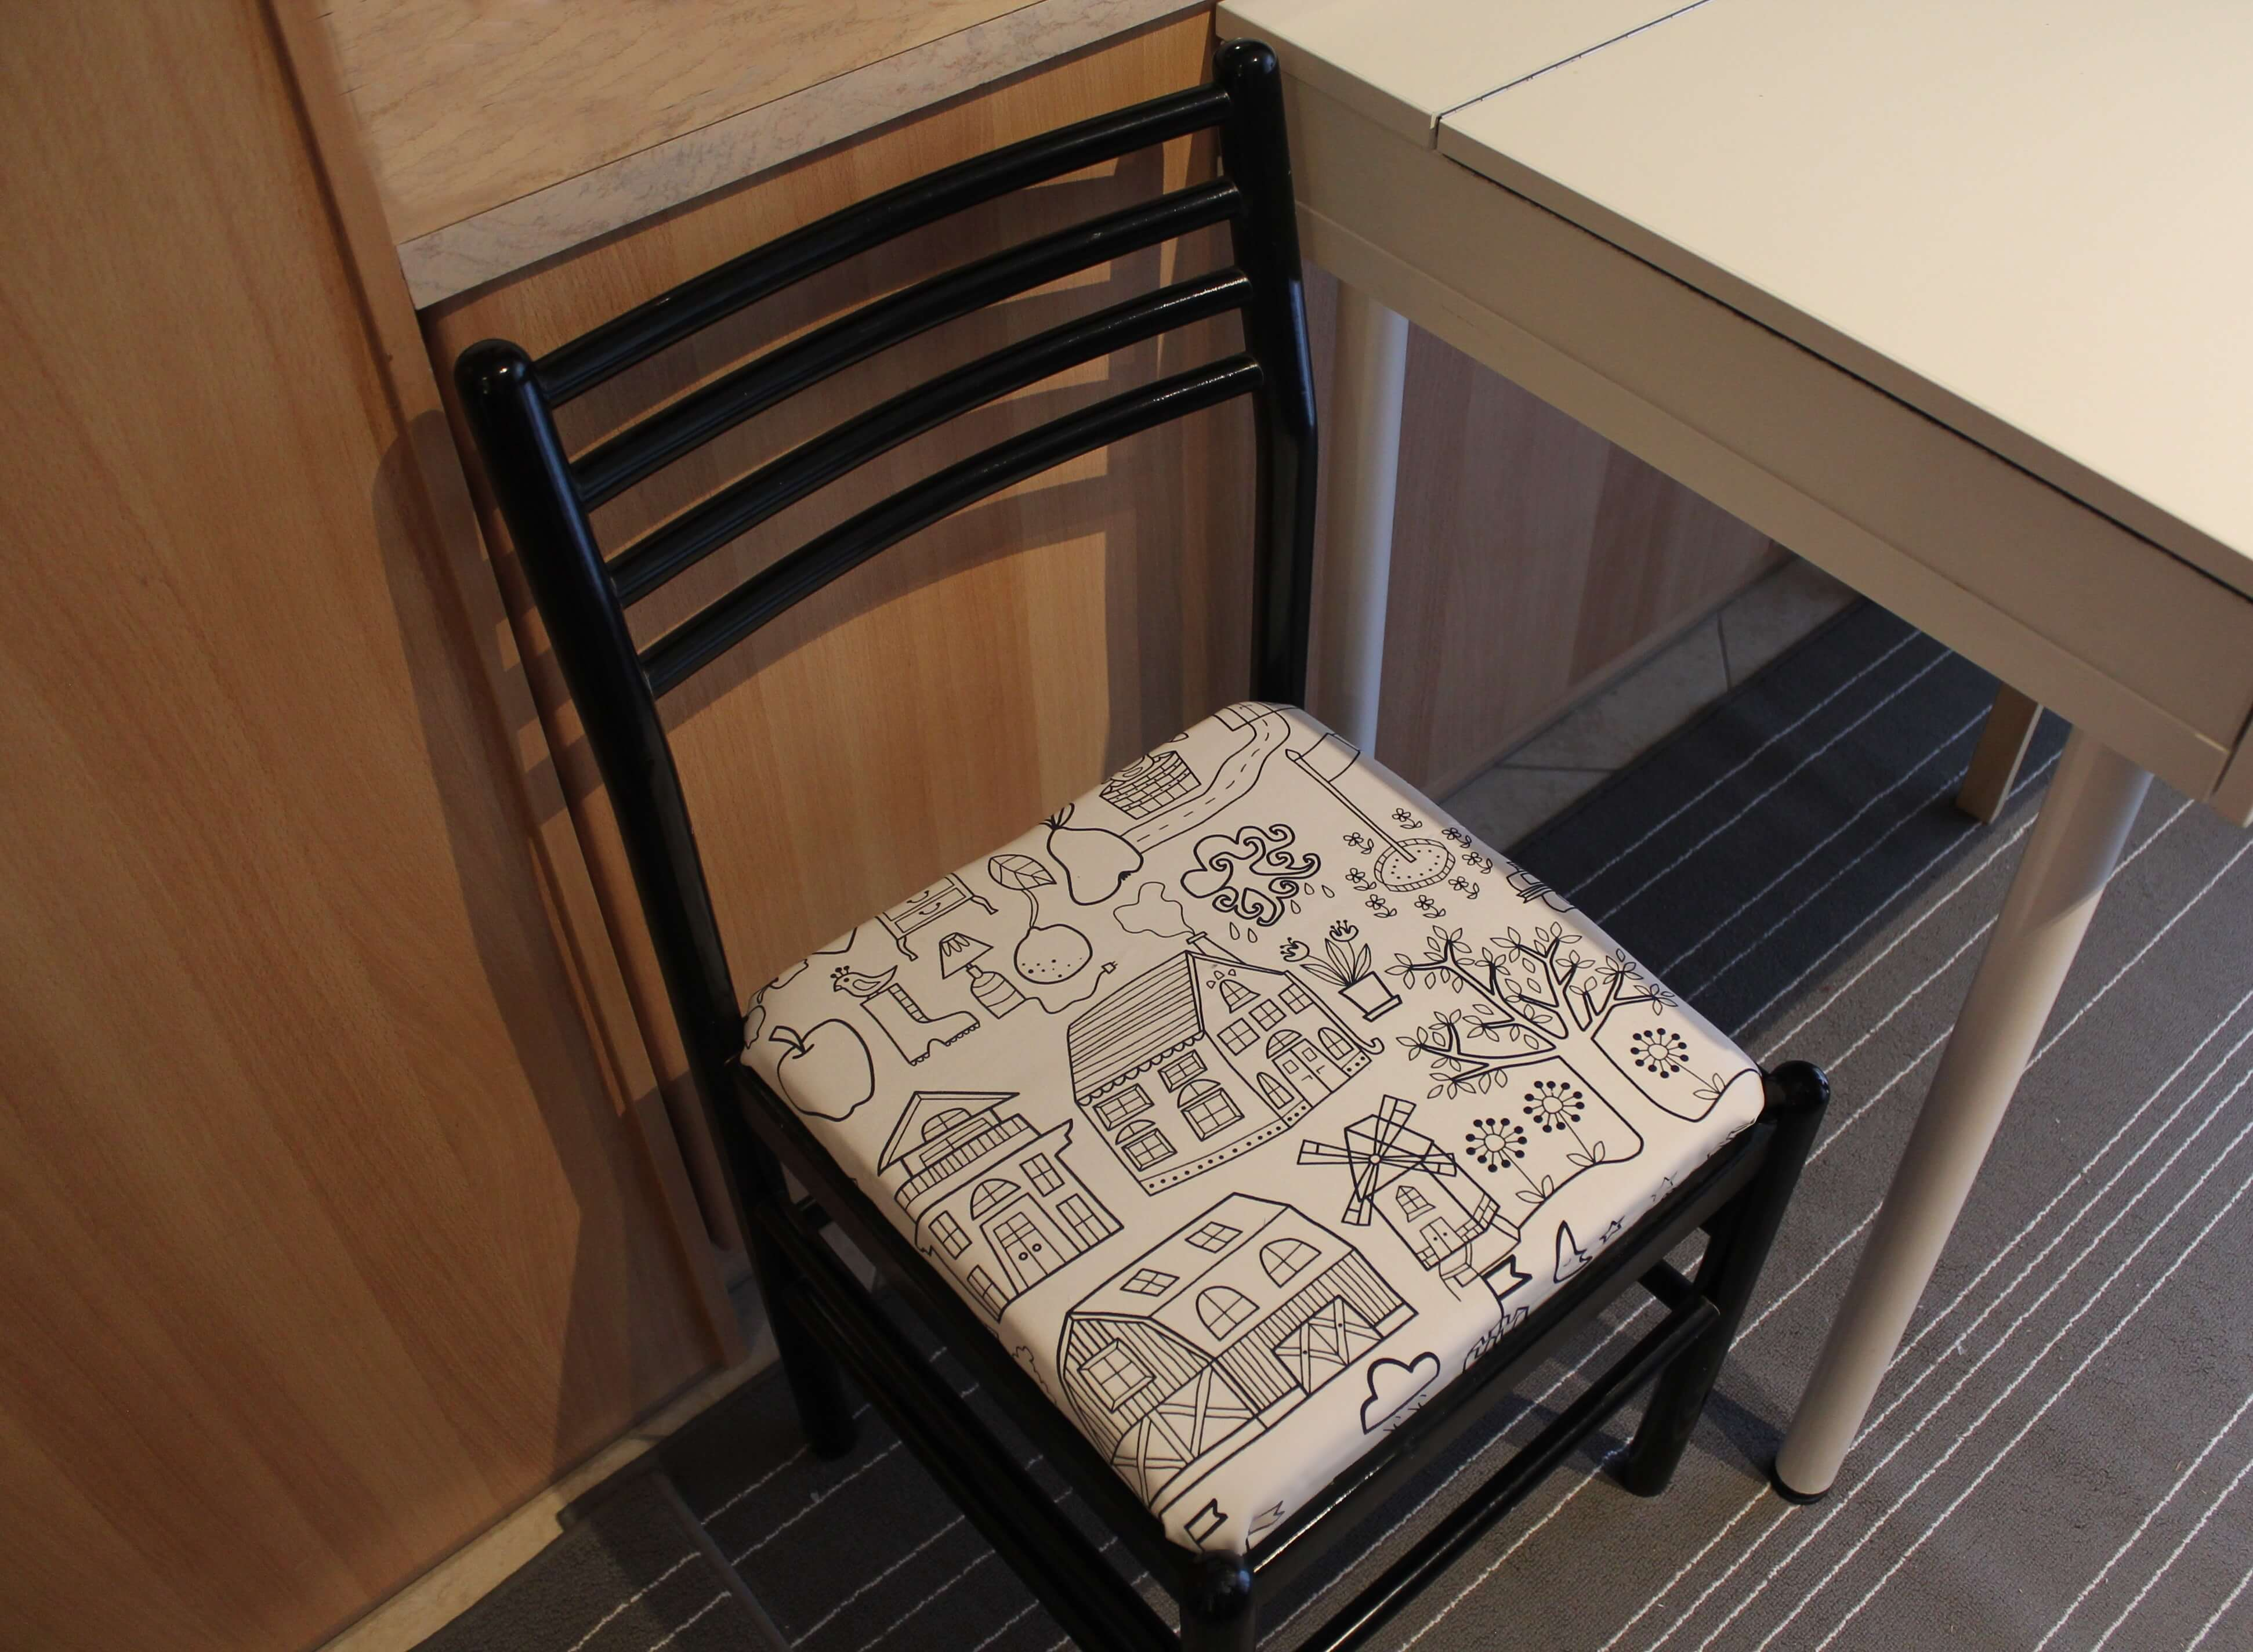 Chair-upholstering do's and don'ts | Kicking Back the Pebbles